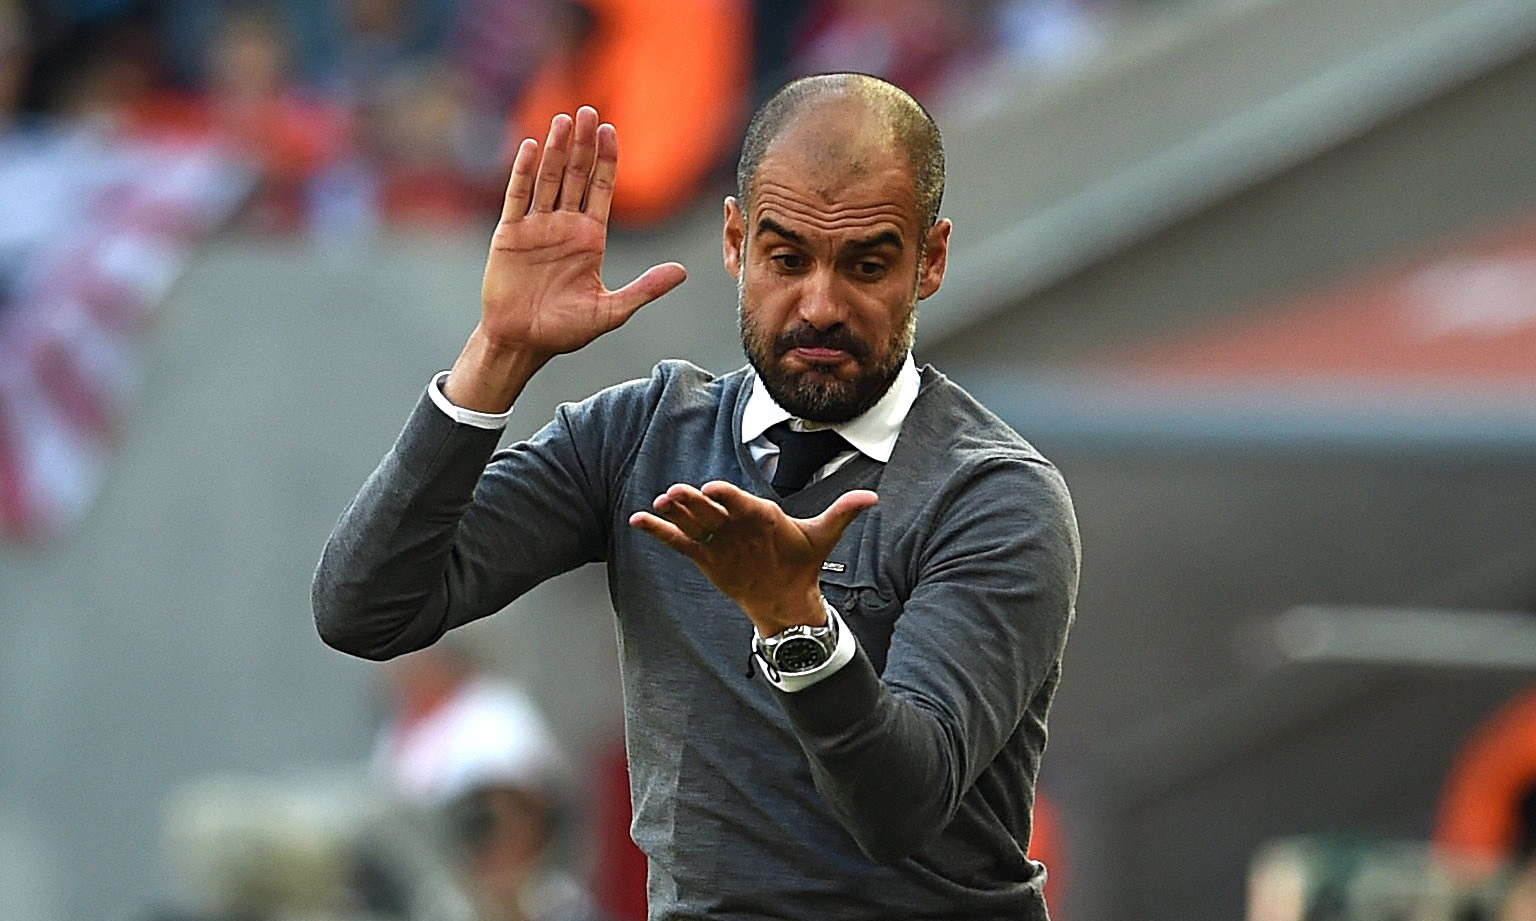 http://static.guim.co.uk/sys-images/Sport/Pix/pictures/2014/10/15/1413392788146/Pep-Guardiola-011.jpg